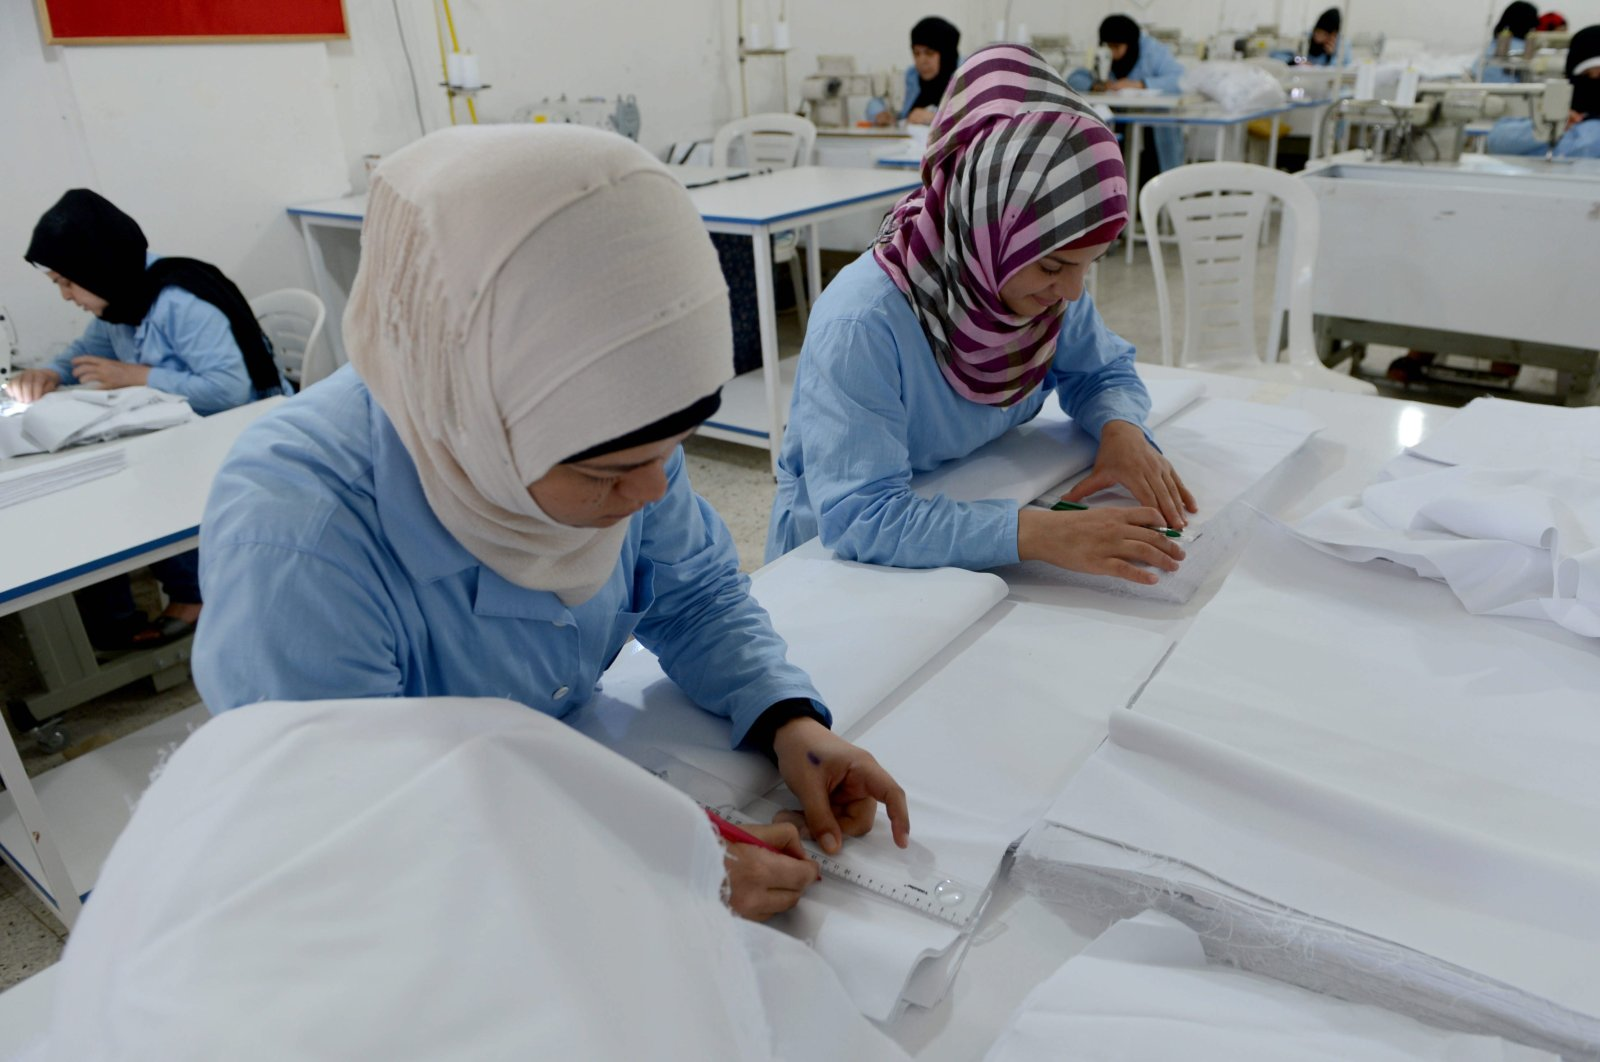 Syrian women attend sewing classes endorsed by the local lifelong learning directorate, in Kilis, southern Turkey, July 16, 2016. (AA PHOTO)